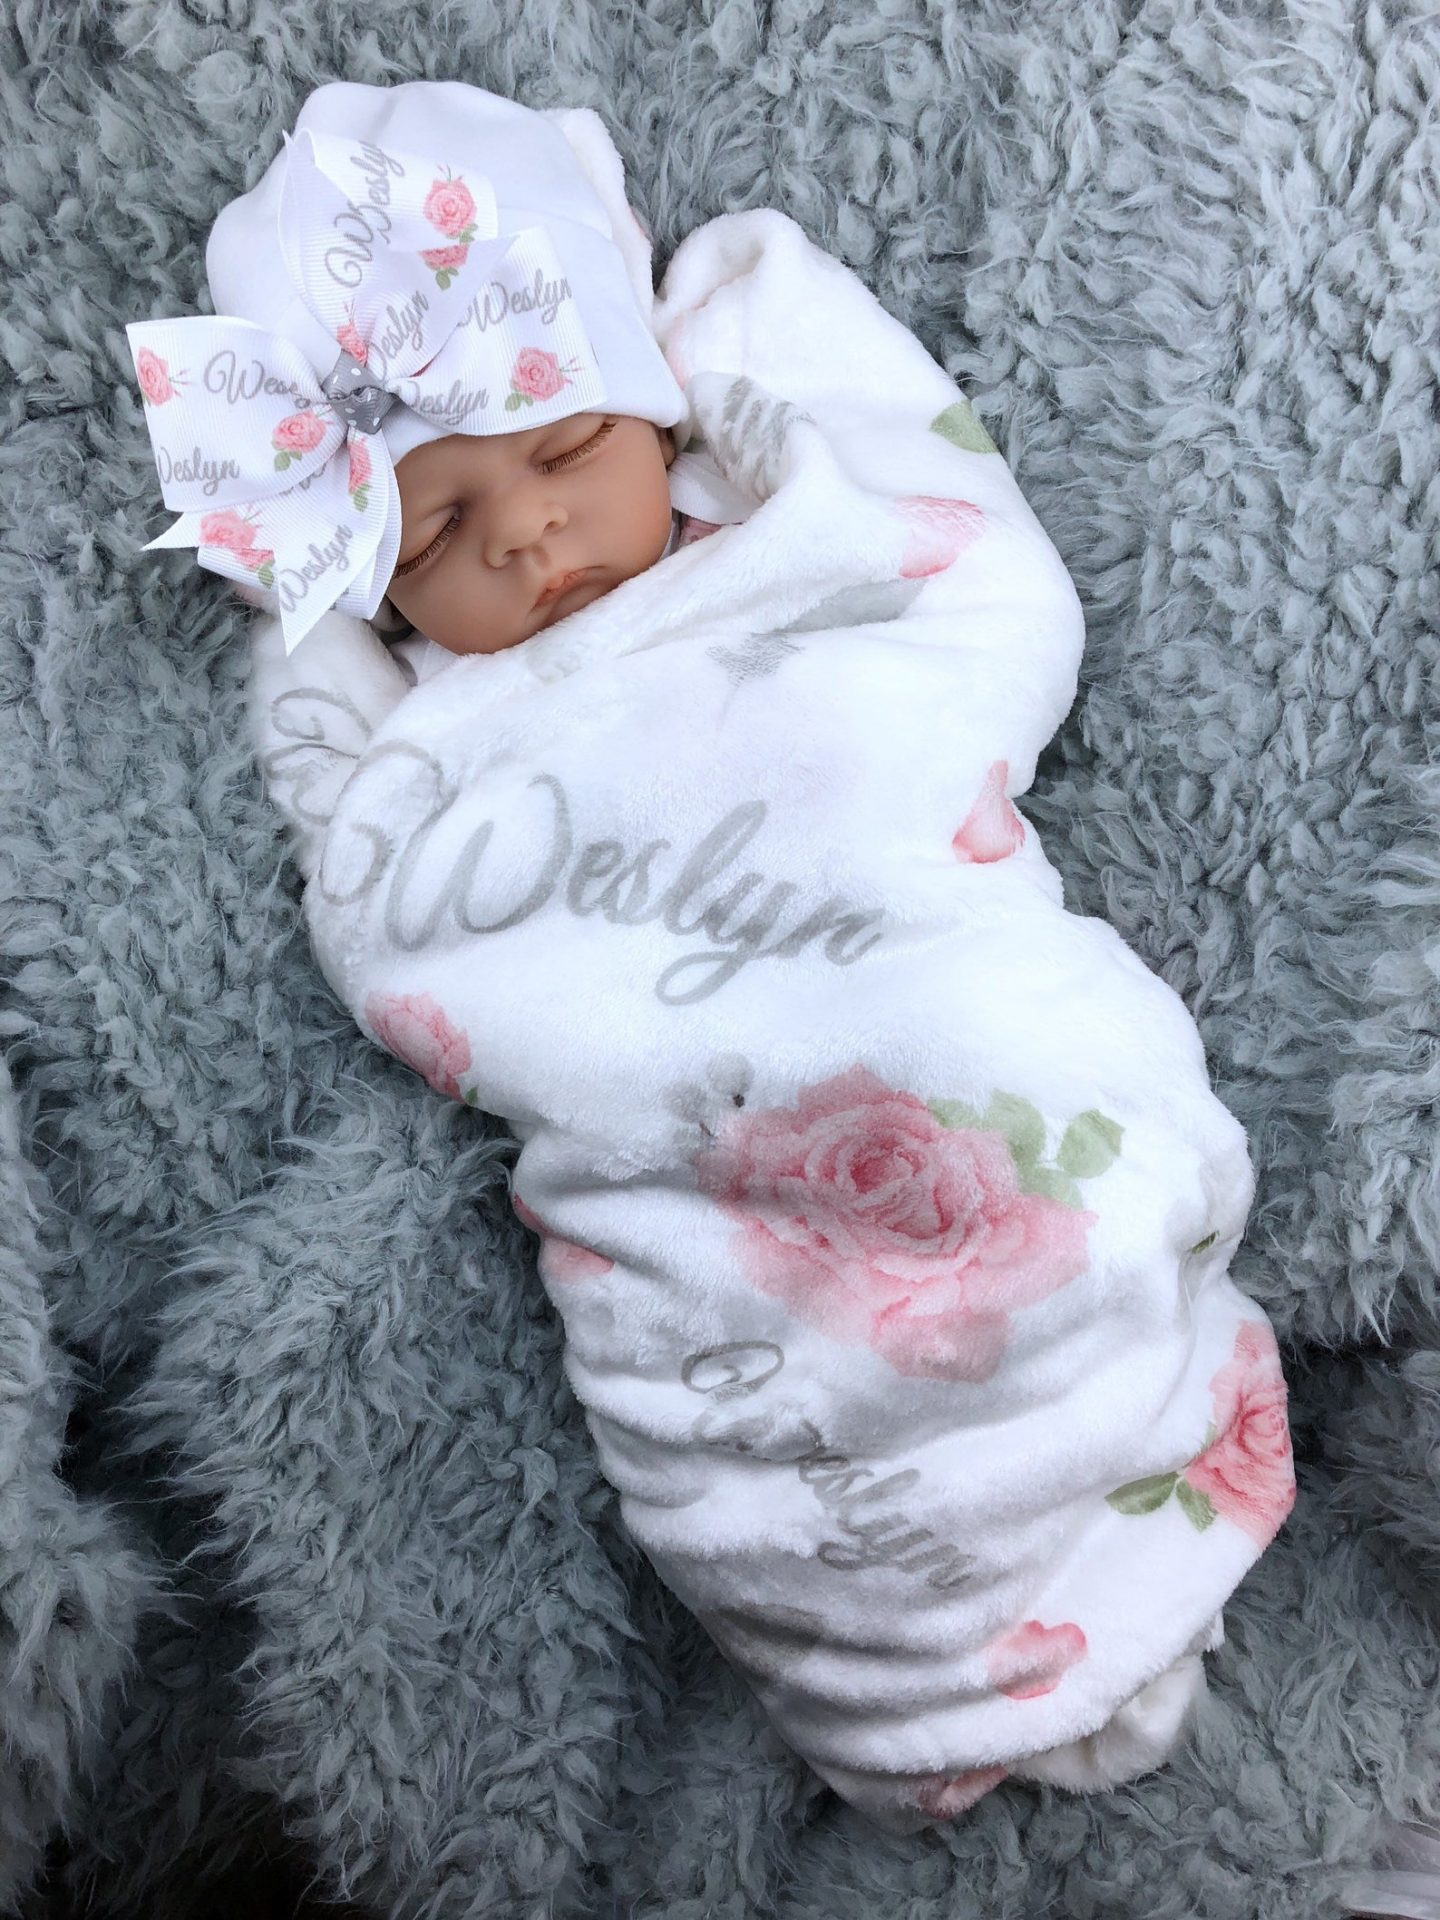 White and pink baby blanket for newborns